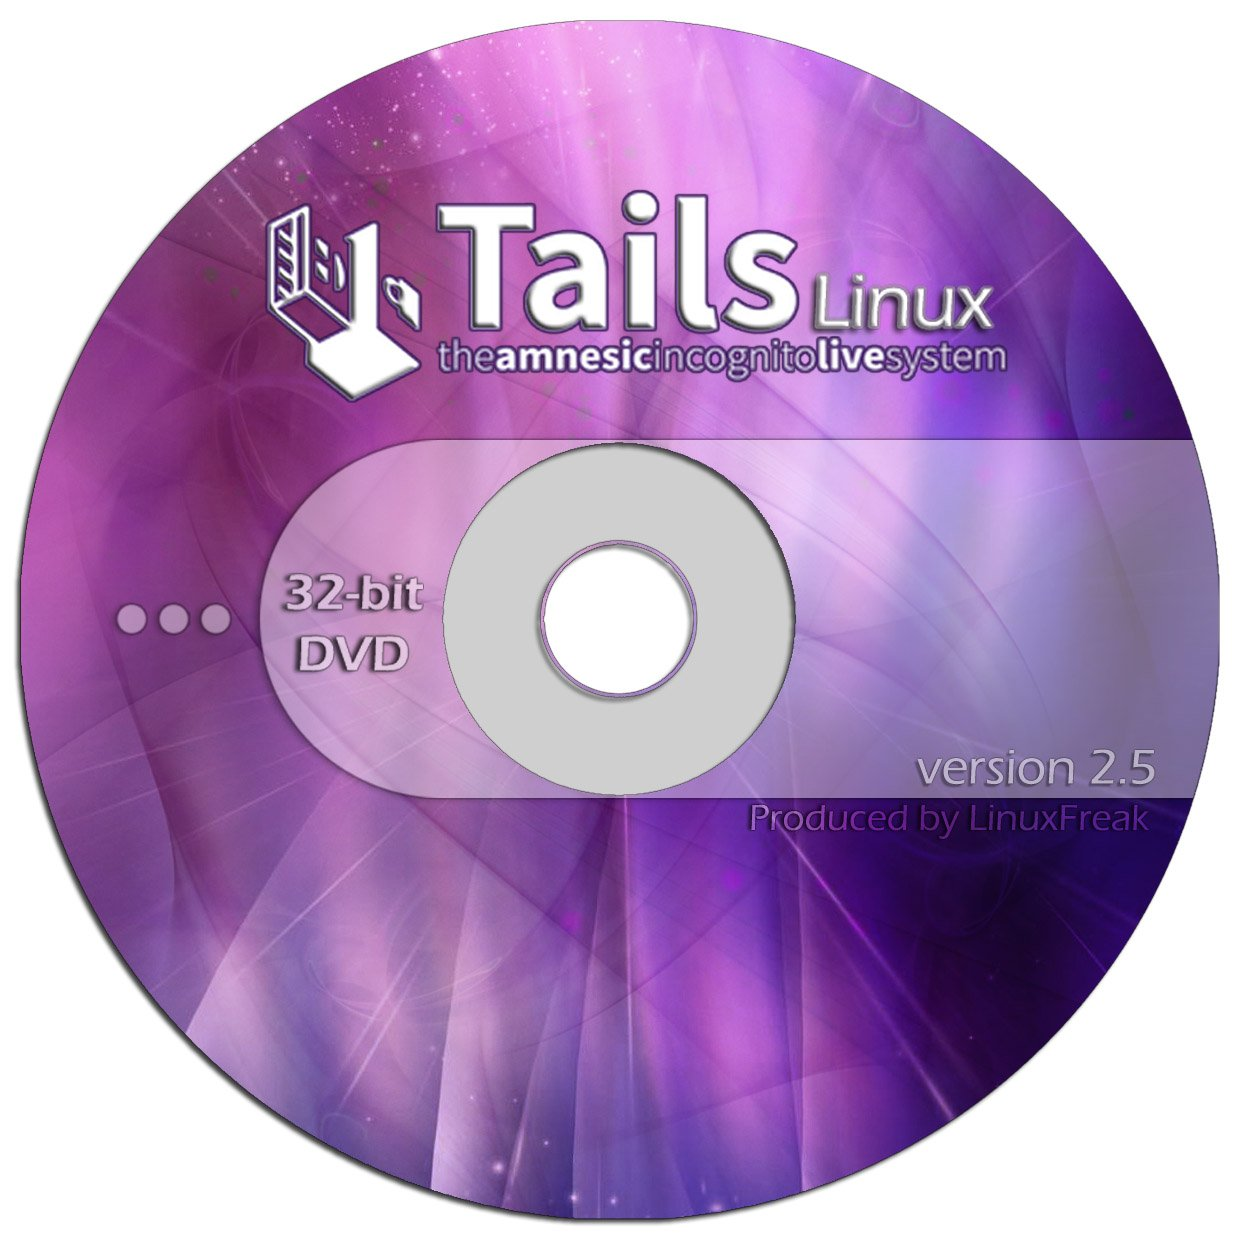 Tails Linux 2.5 - Browse Anonymously - Bootable Premium DVD by LinuxFreak